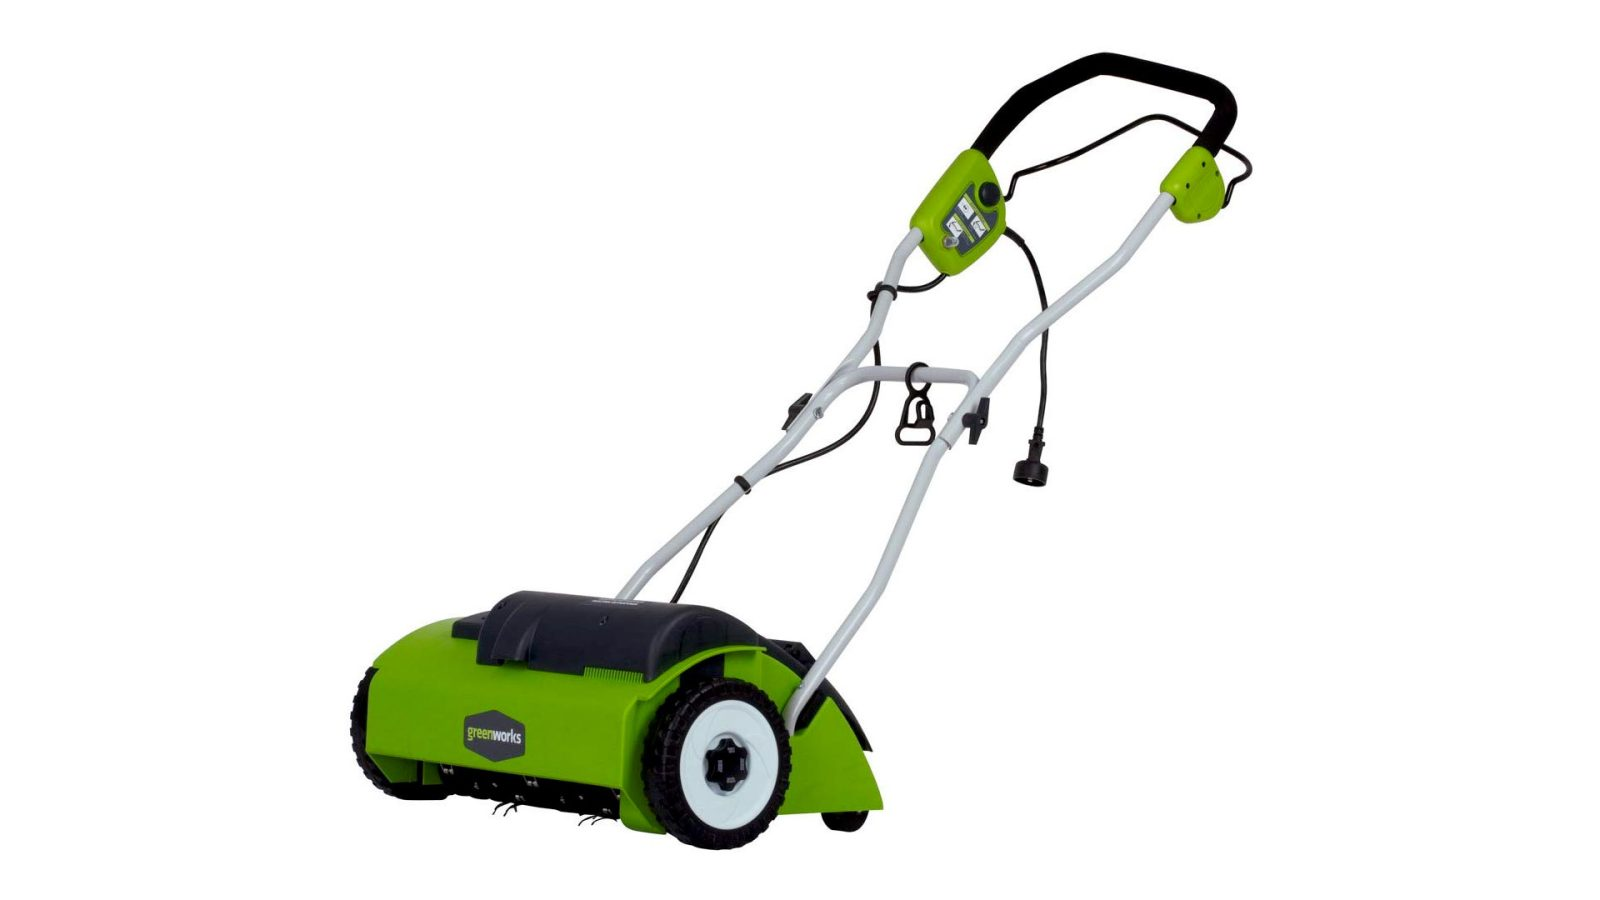 GreenWorks' highly-rated 14-inch electric dethatcher hits $82, more in today's green deals